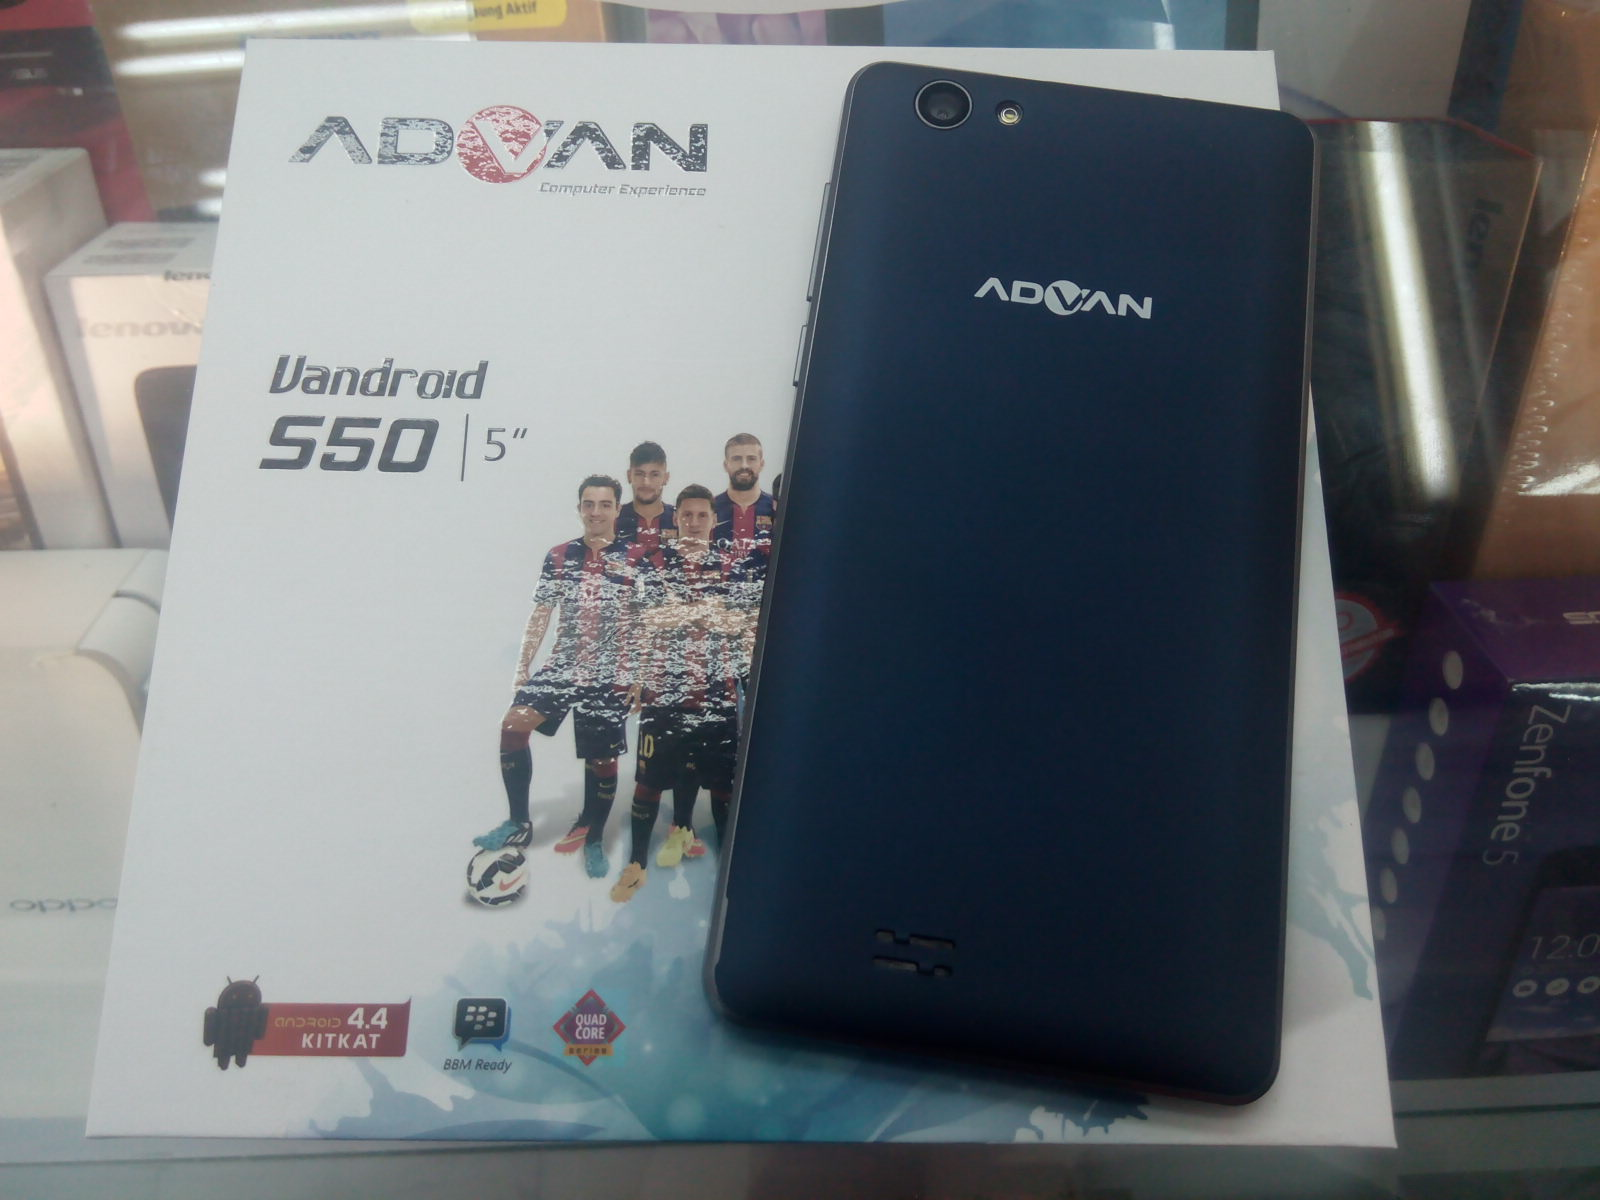 Jual Tablet Advan Os Kitkat Welcome To S5j 4gb 8mp S50 Quadcore 5 Ram 512mb Rom 4